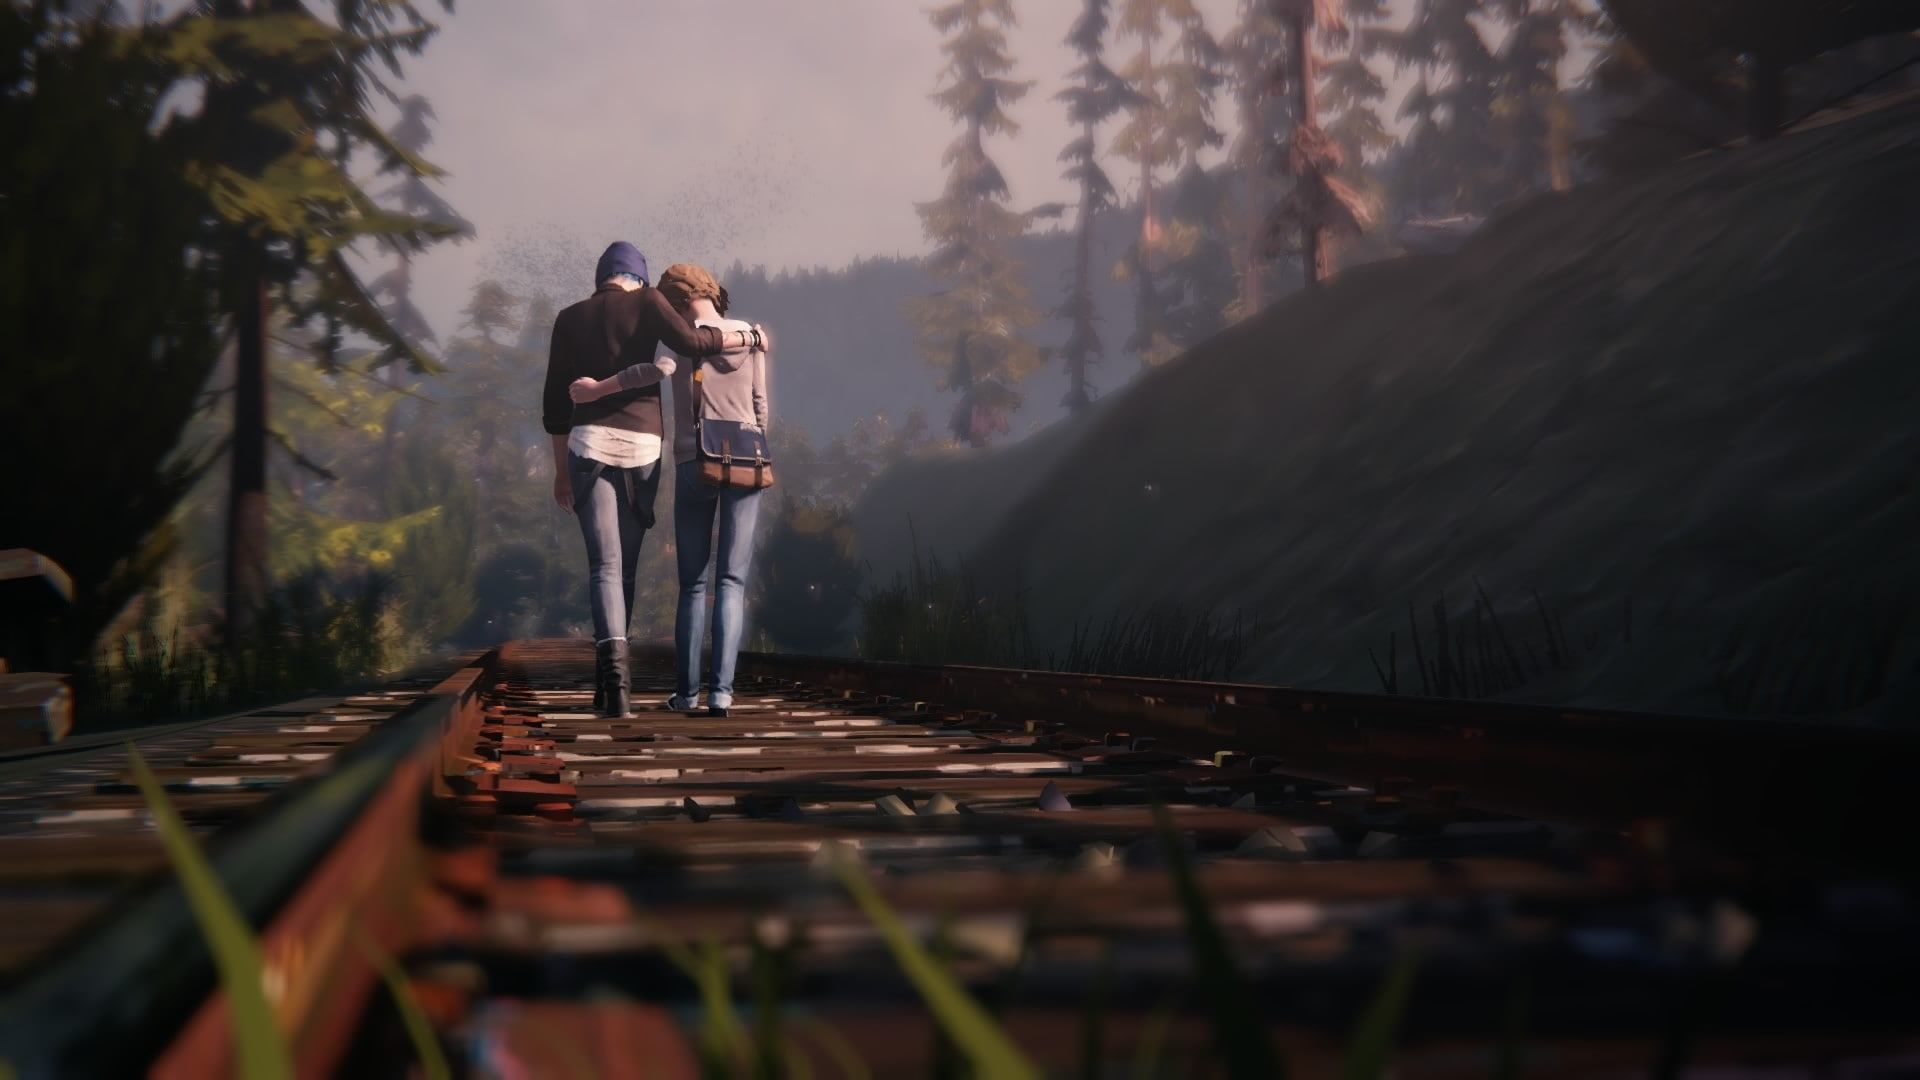 Life Is Strange Chloe Price Max Caulfield 1080p Wallpaper Hdwallpaper Desktop Life Is Strange Wallpaper Life Is Strange Episodes Life Is Strange